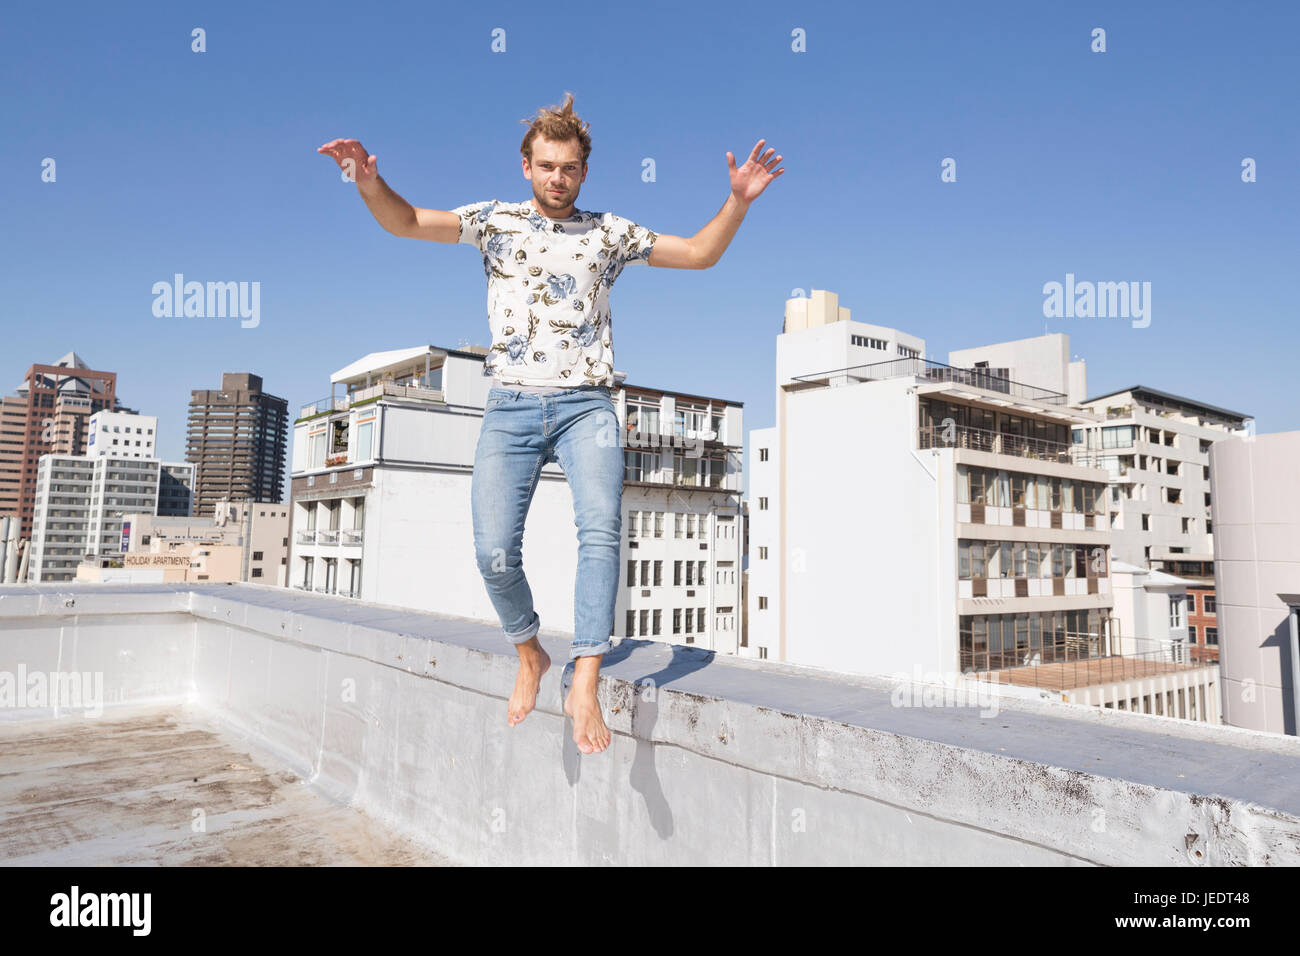 Barefooted man jumping from balustrade of a rooftop terrace - Stock Image